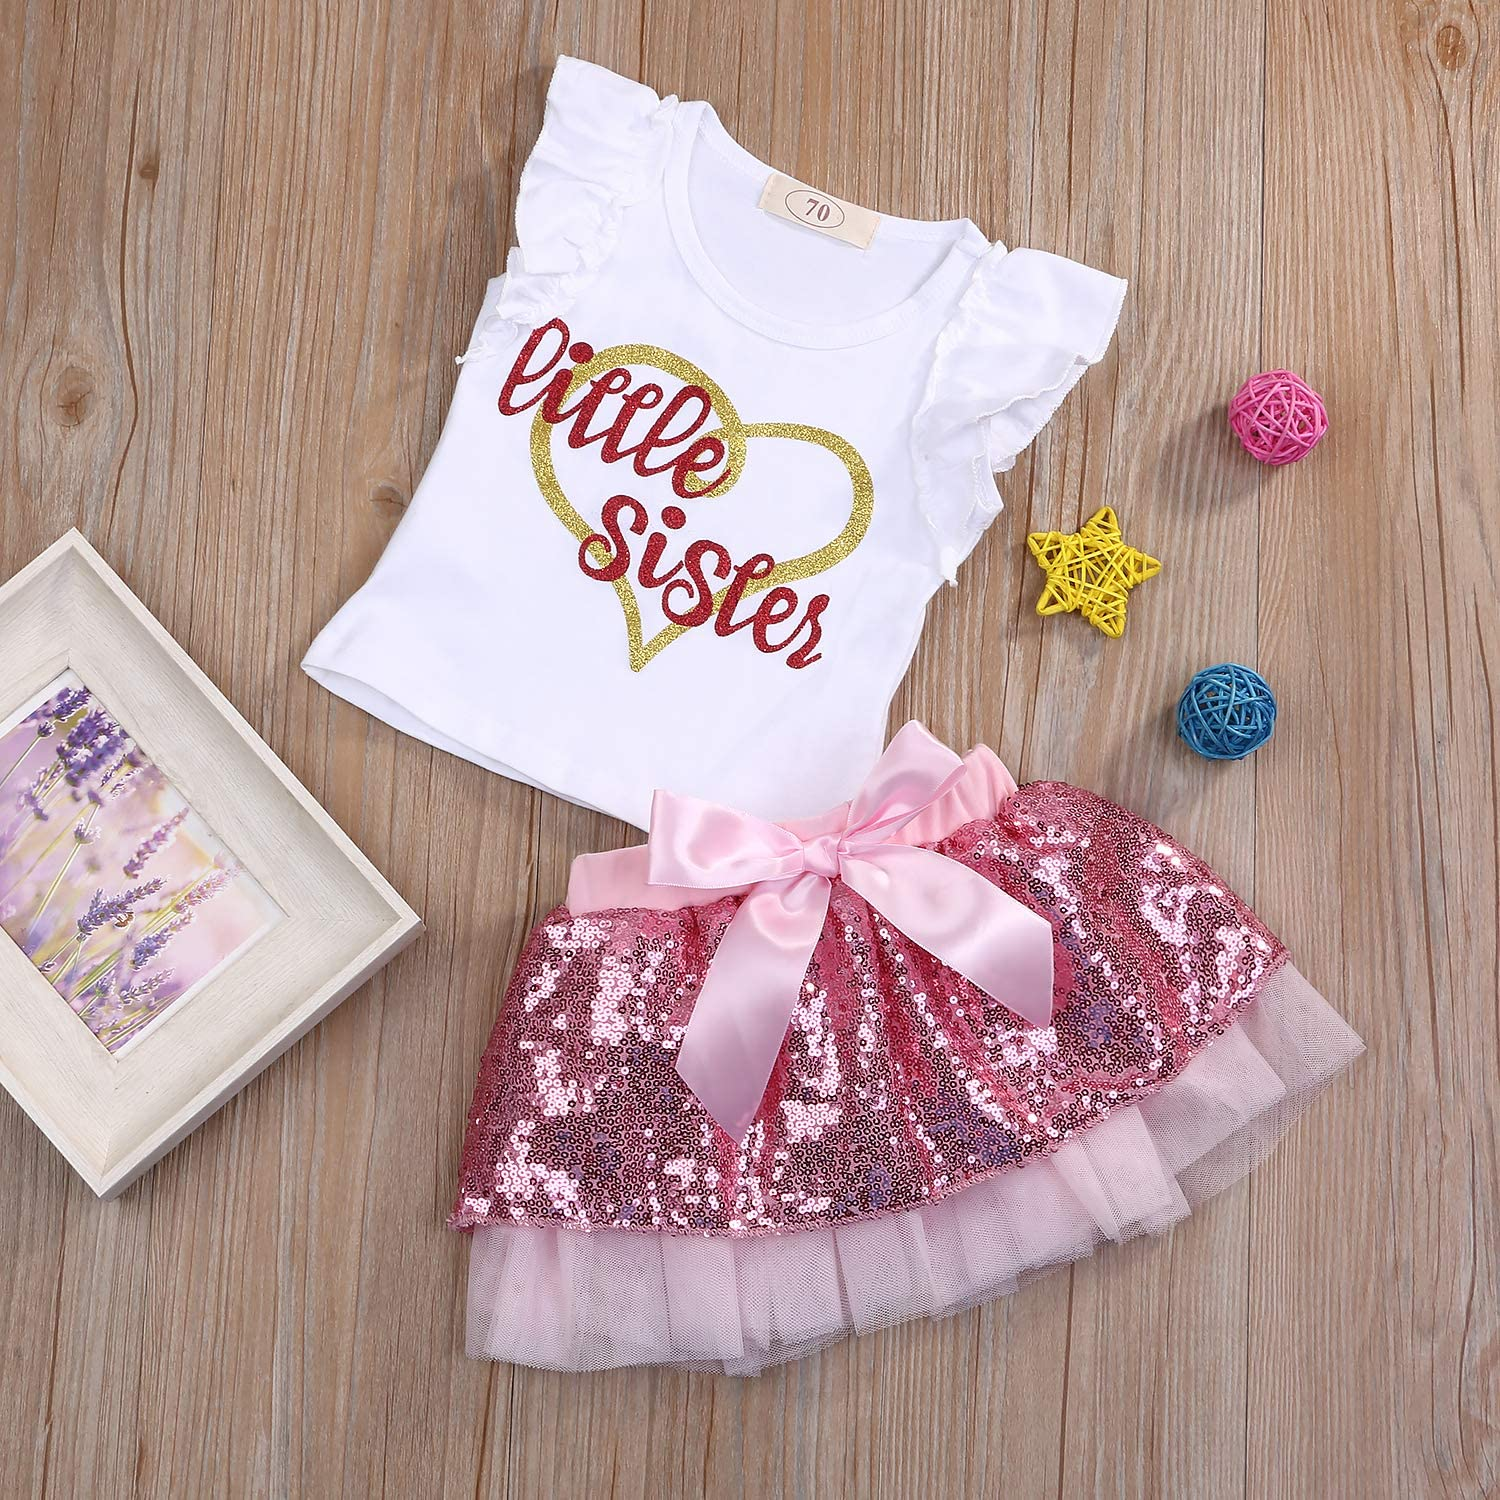 Little Girls Sister and Sister Summer Outfits Flying Sleeve Top Bow-Knot Skirts Sets Shining 2Pcs